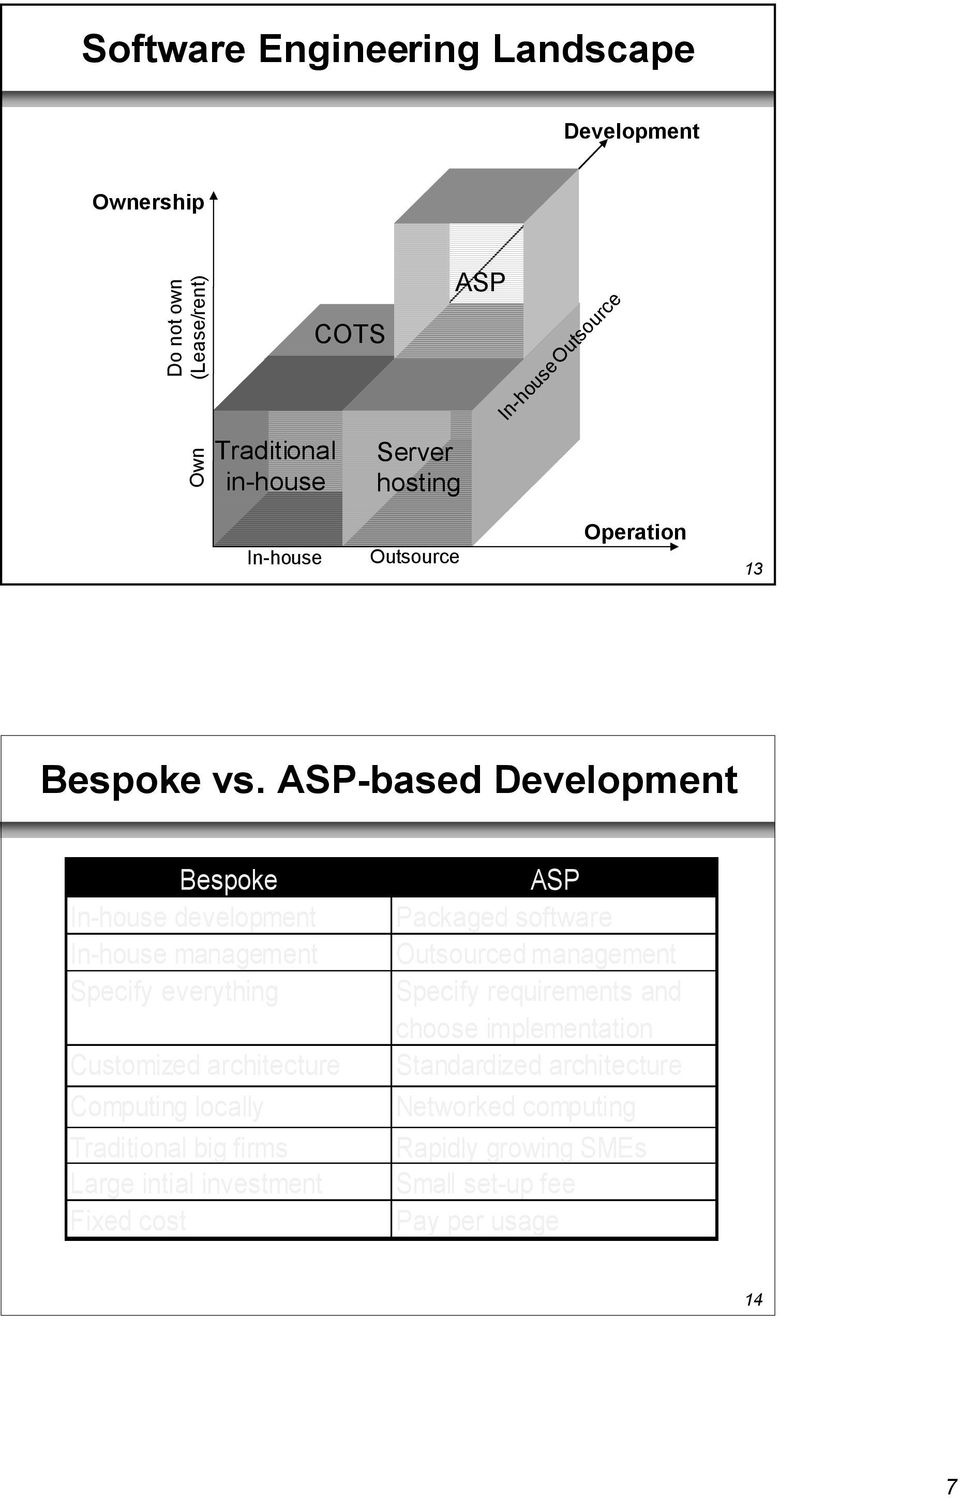 ASP-based Development Bespoke In-house development In-house management Specify everything Customized architecture Computing locally